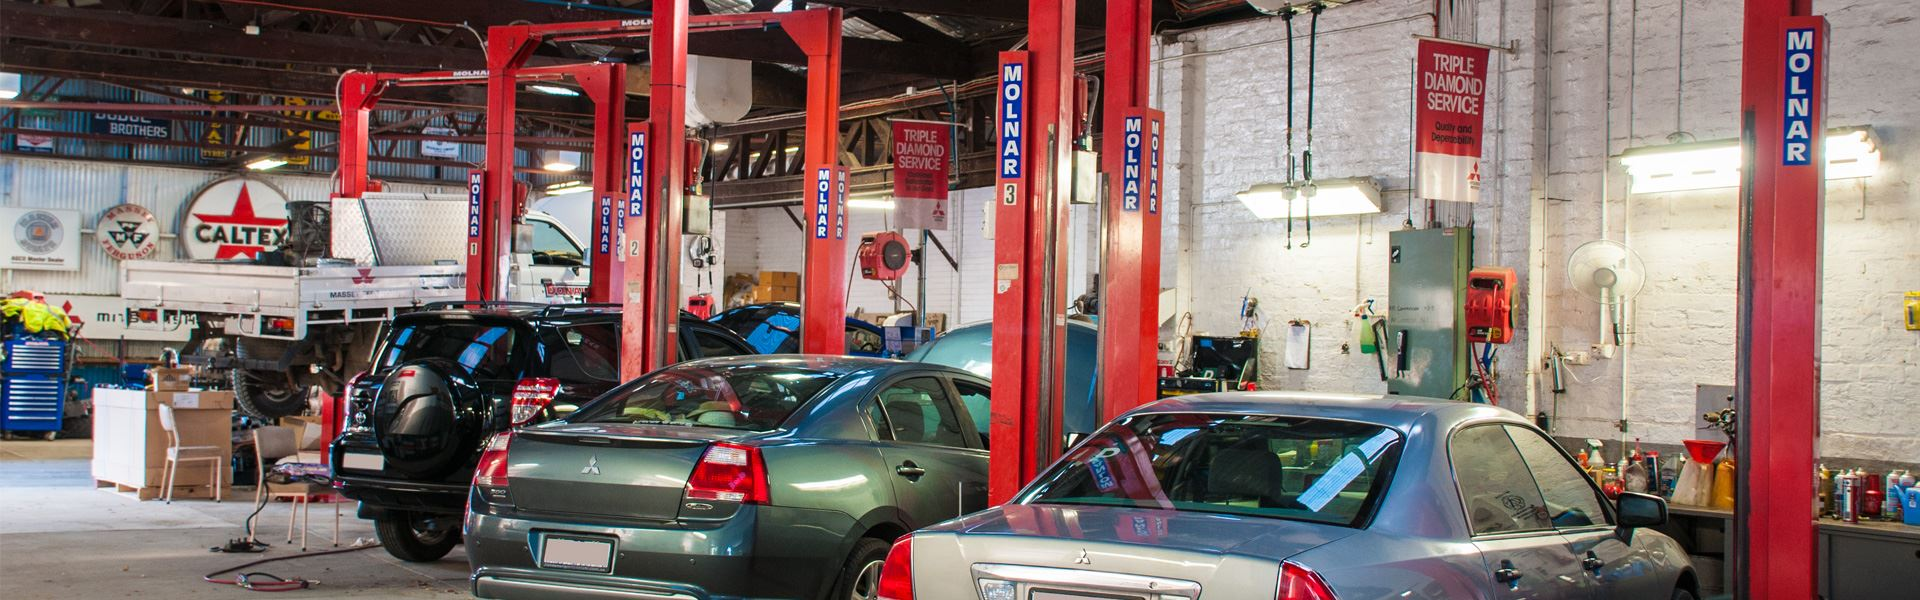 We sell, service & repair new and used cars